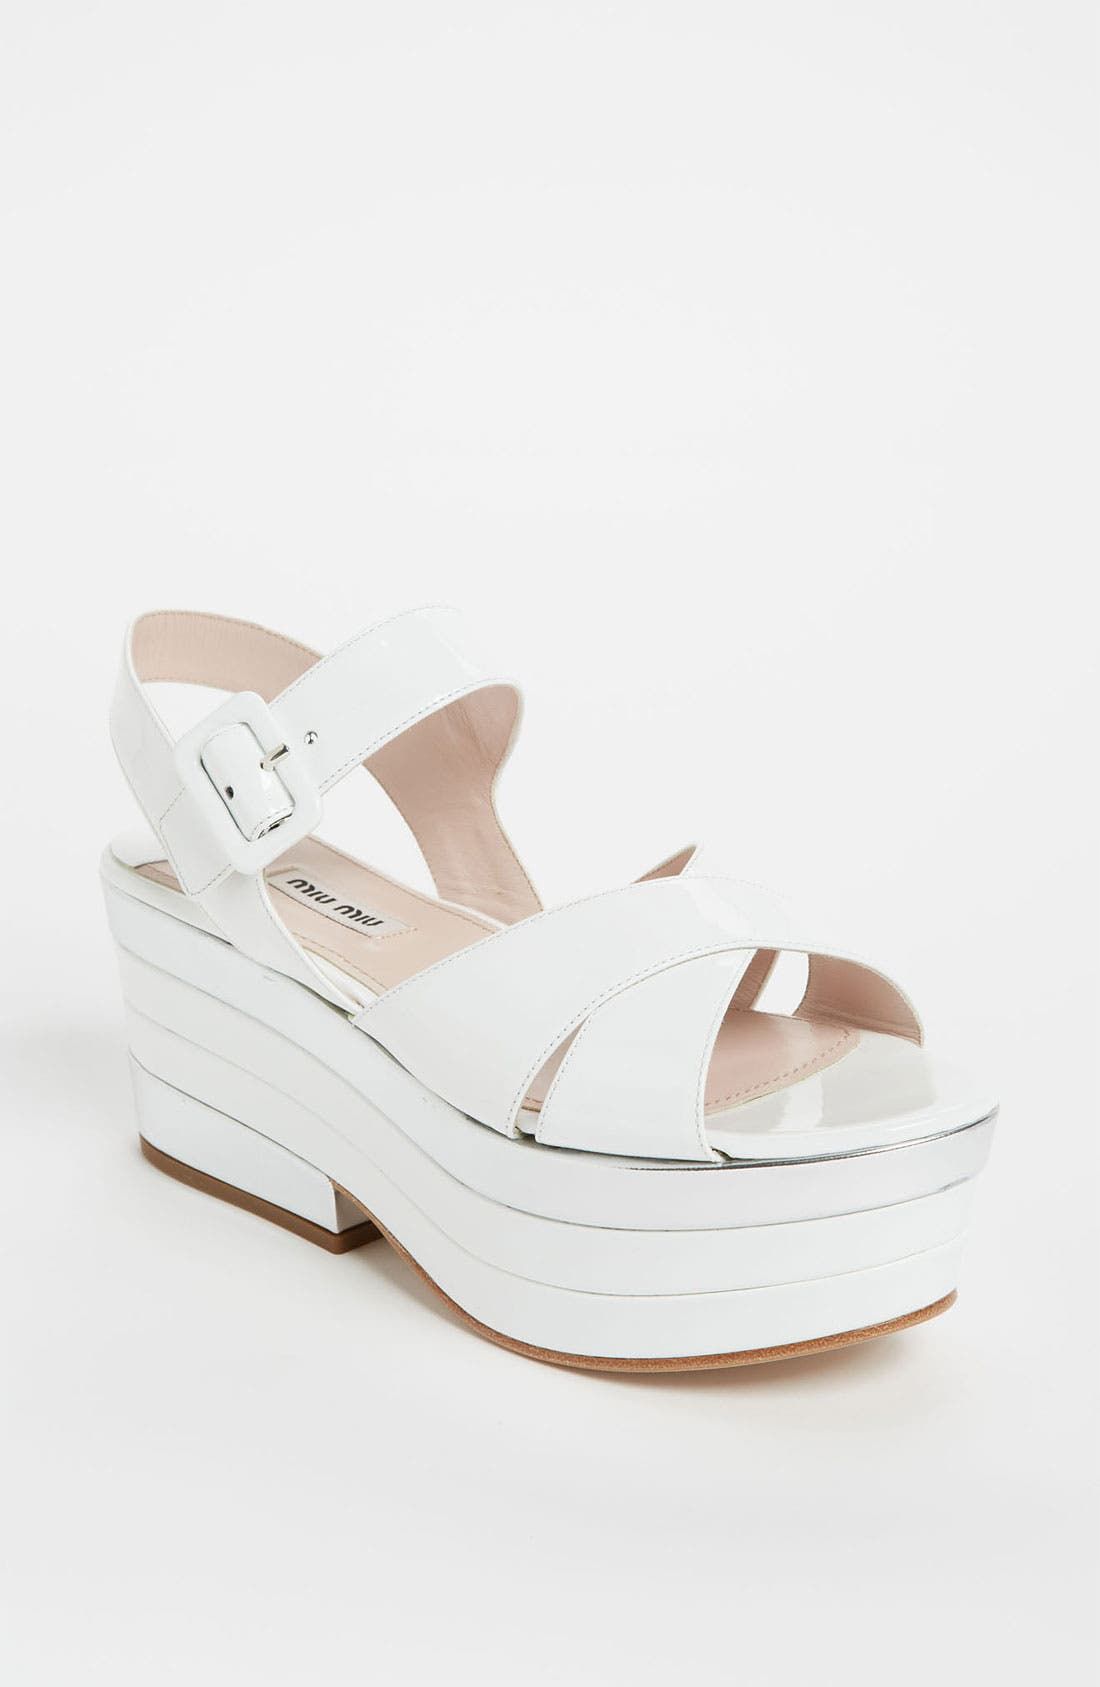 Alternate Image 1 Selected - Miu Miu Retro Sandal